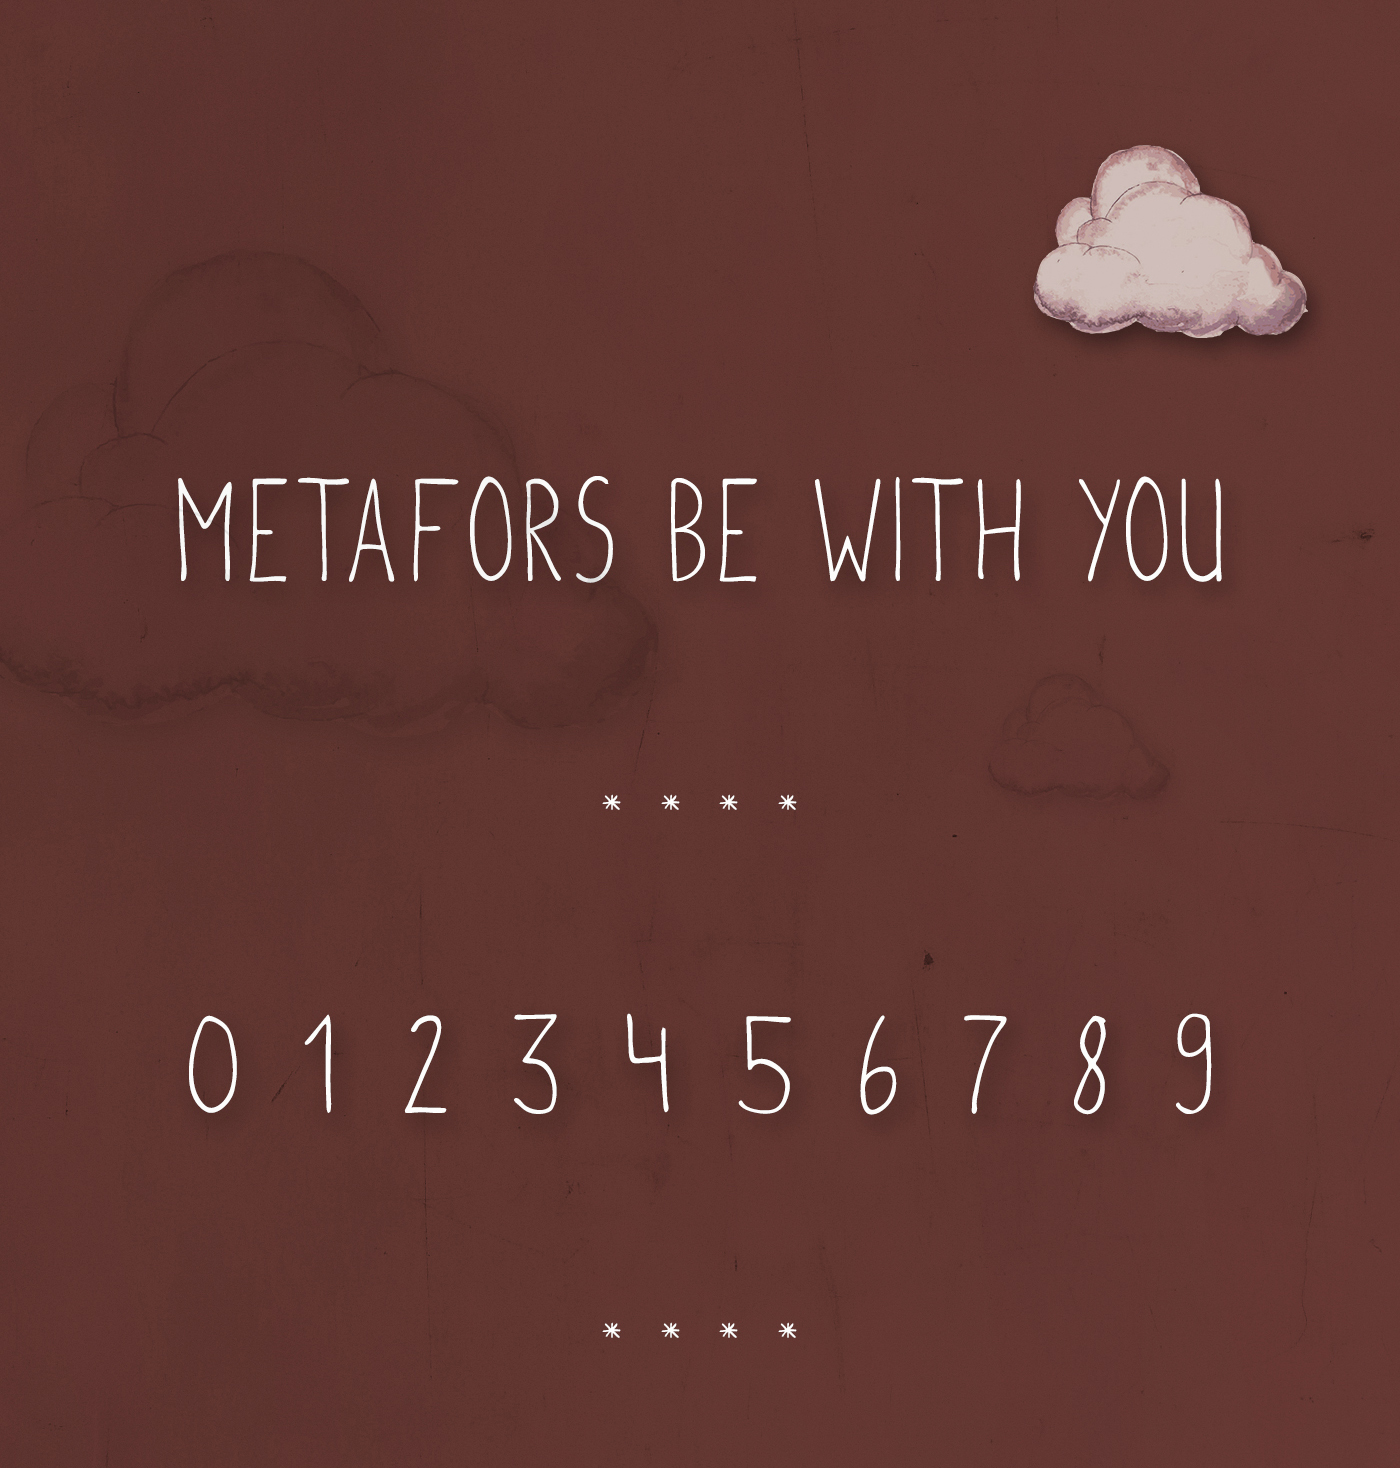 hand-drawn-font-metafors-2